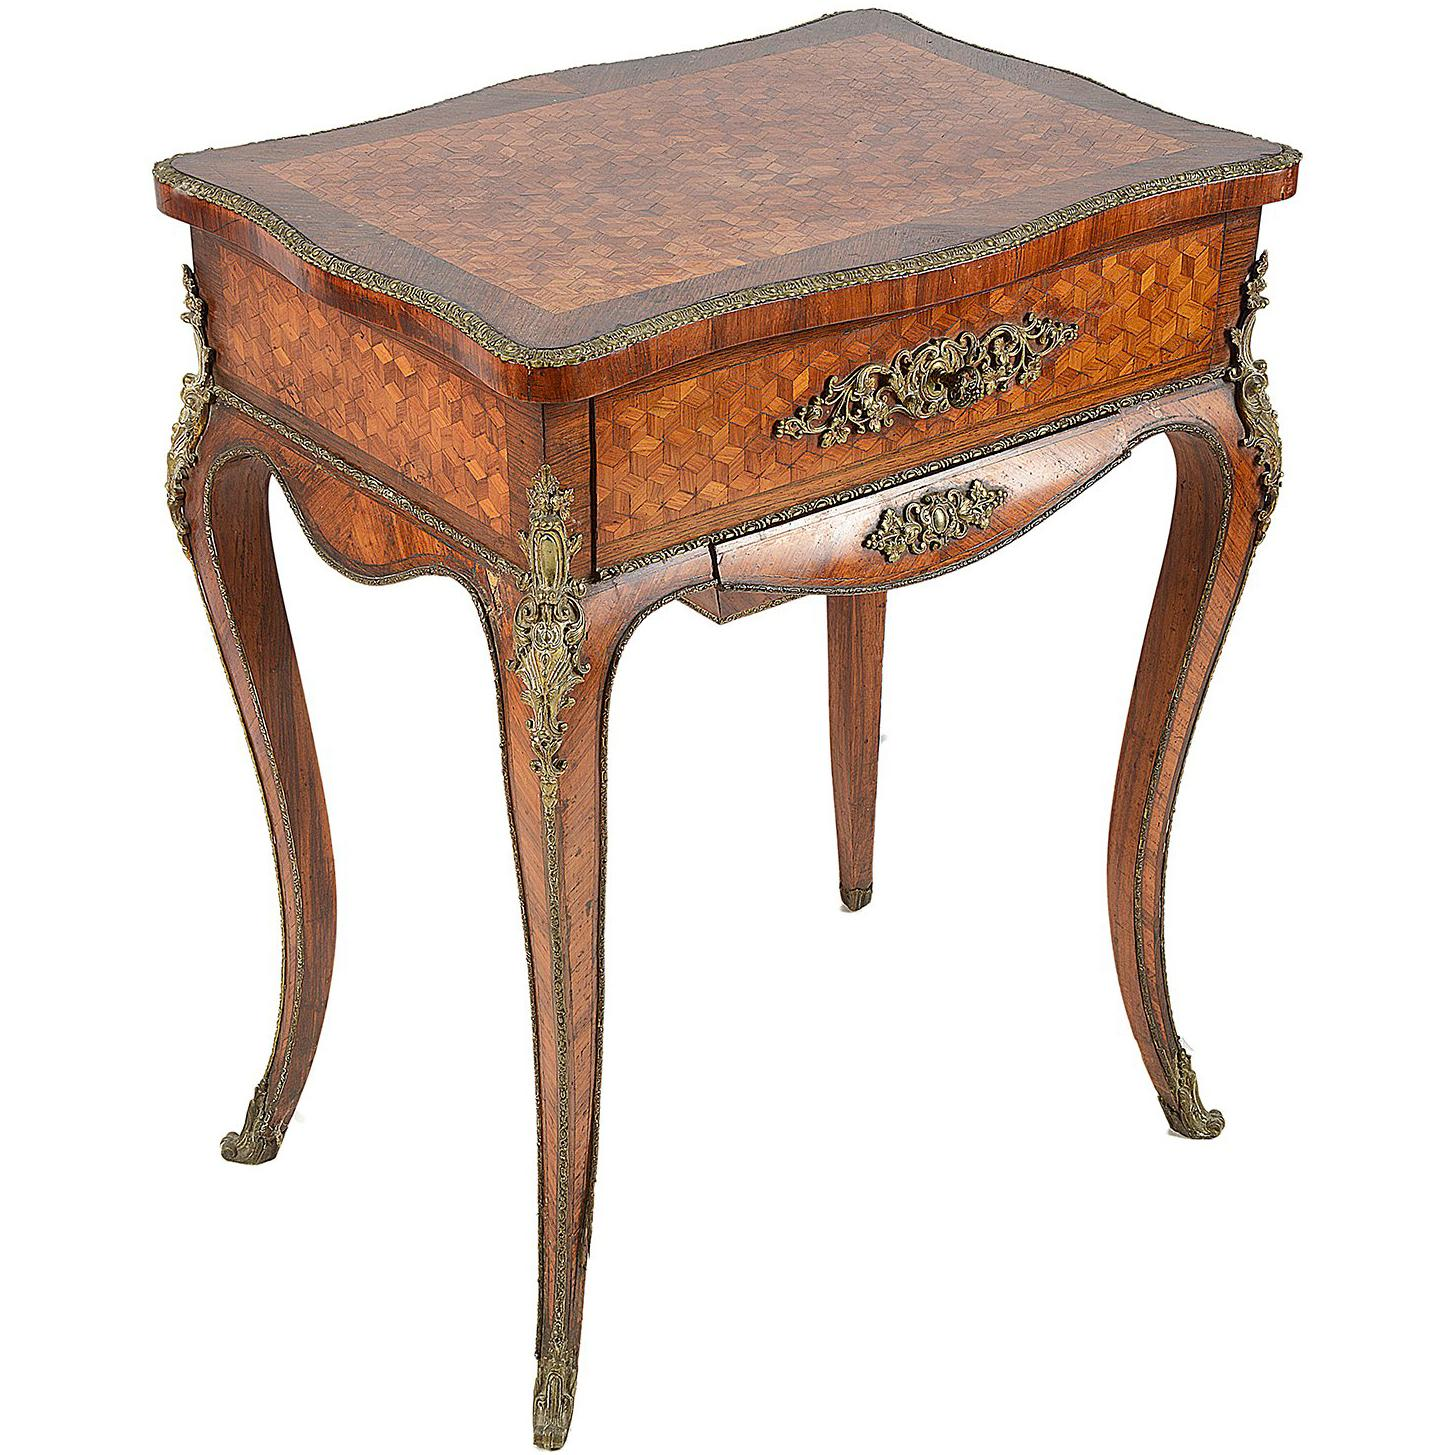 louis xiv tables for master oak corner accent table folding garden furniture acrylic and brass coffee oriental ginger jar lamps living spaces sofas desk lamp ikea plastic storage